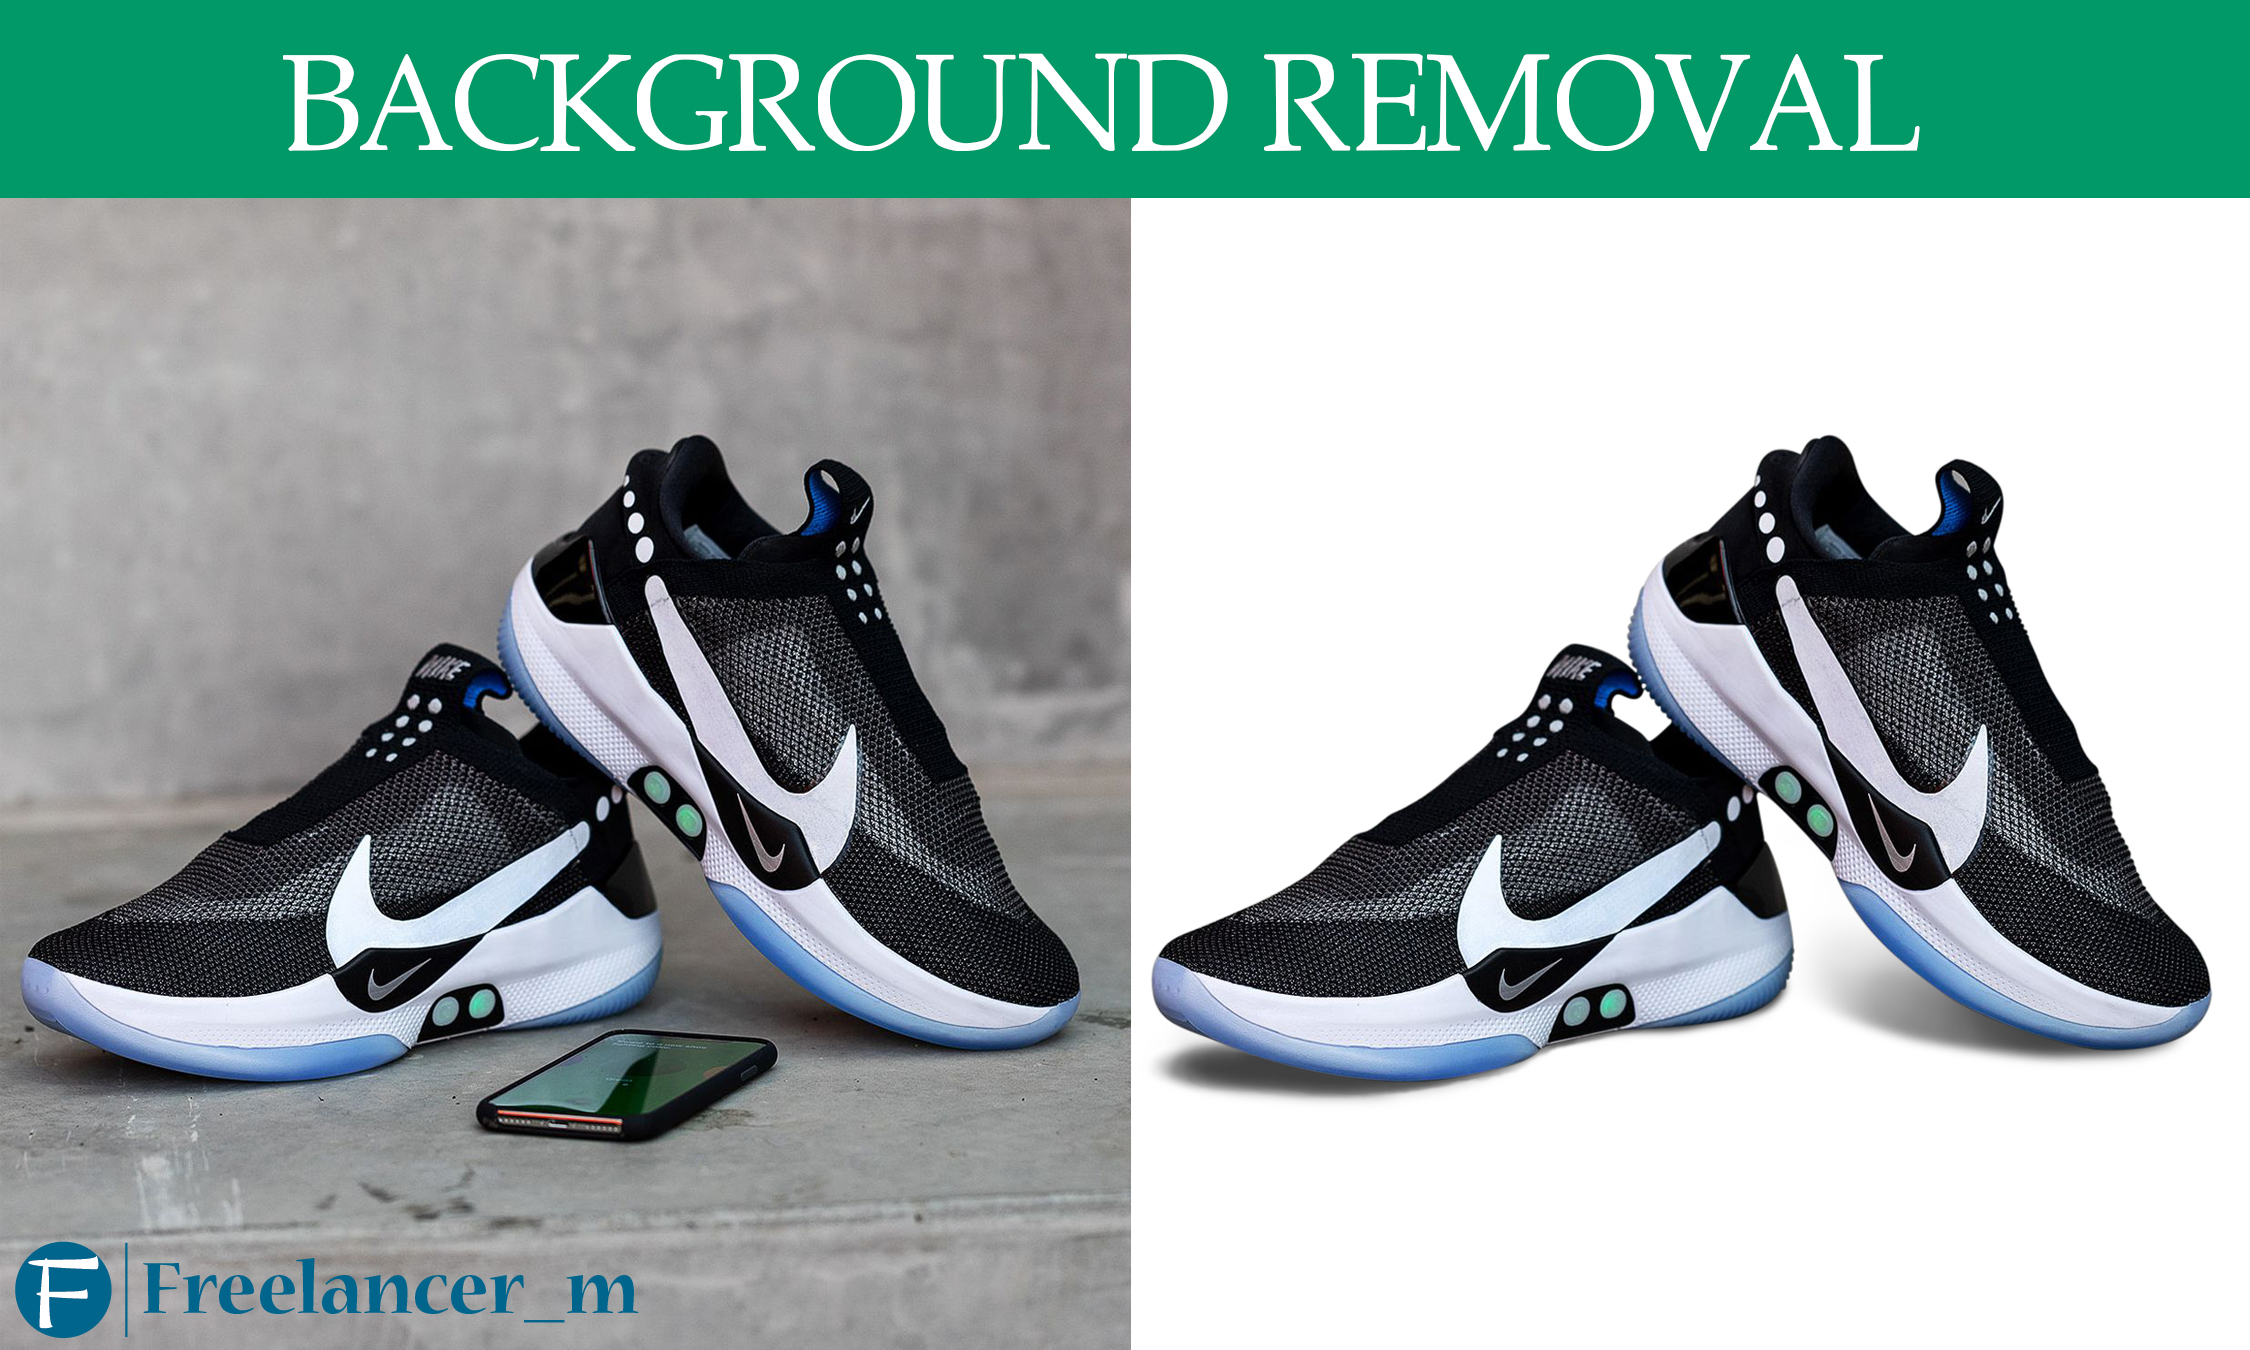 Product retouch and background removeal